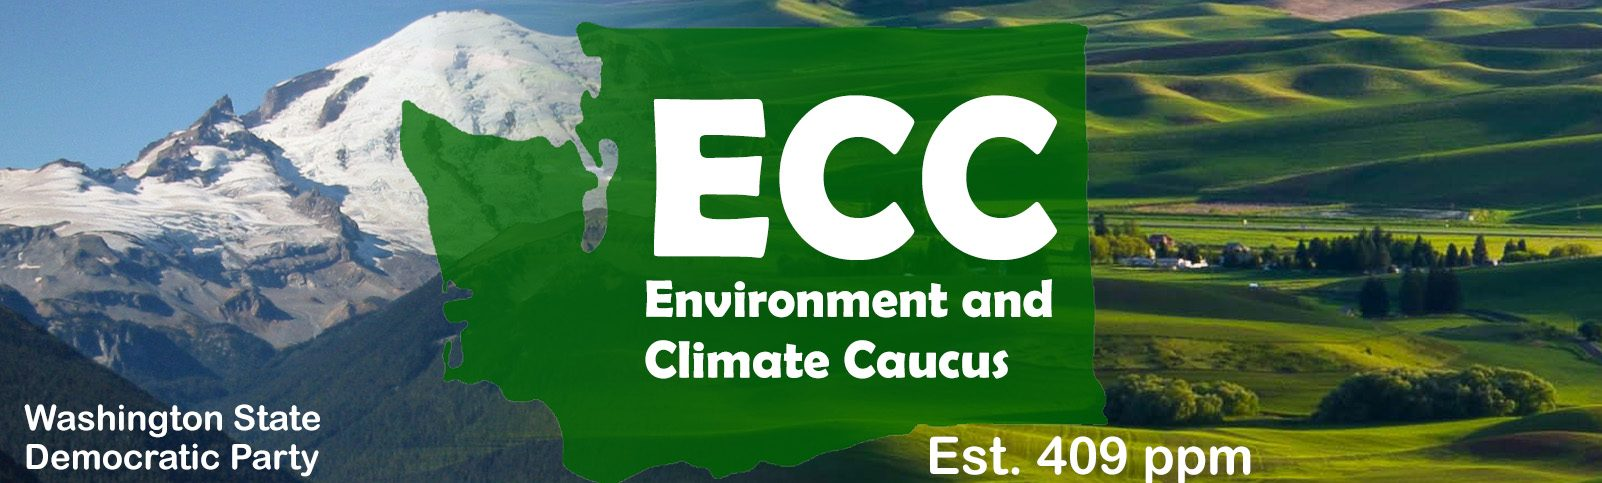 Environment and Climate Caucus (ECC) of the Washington State Democrats